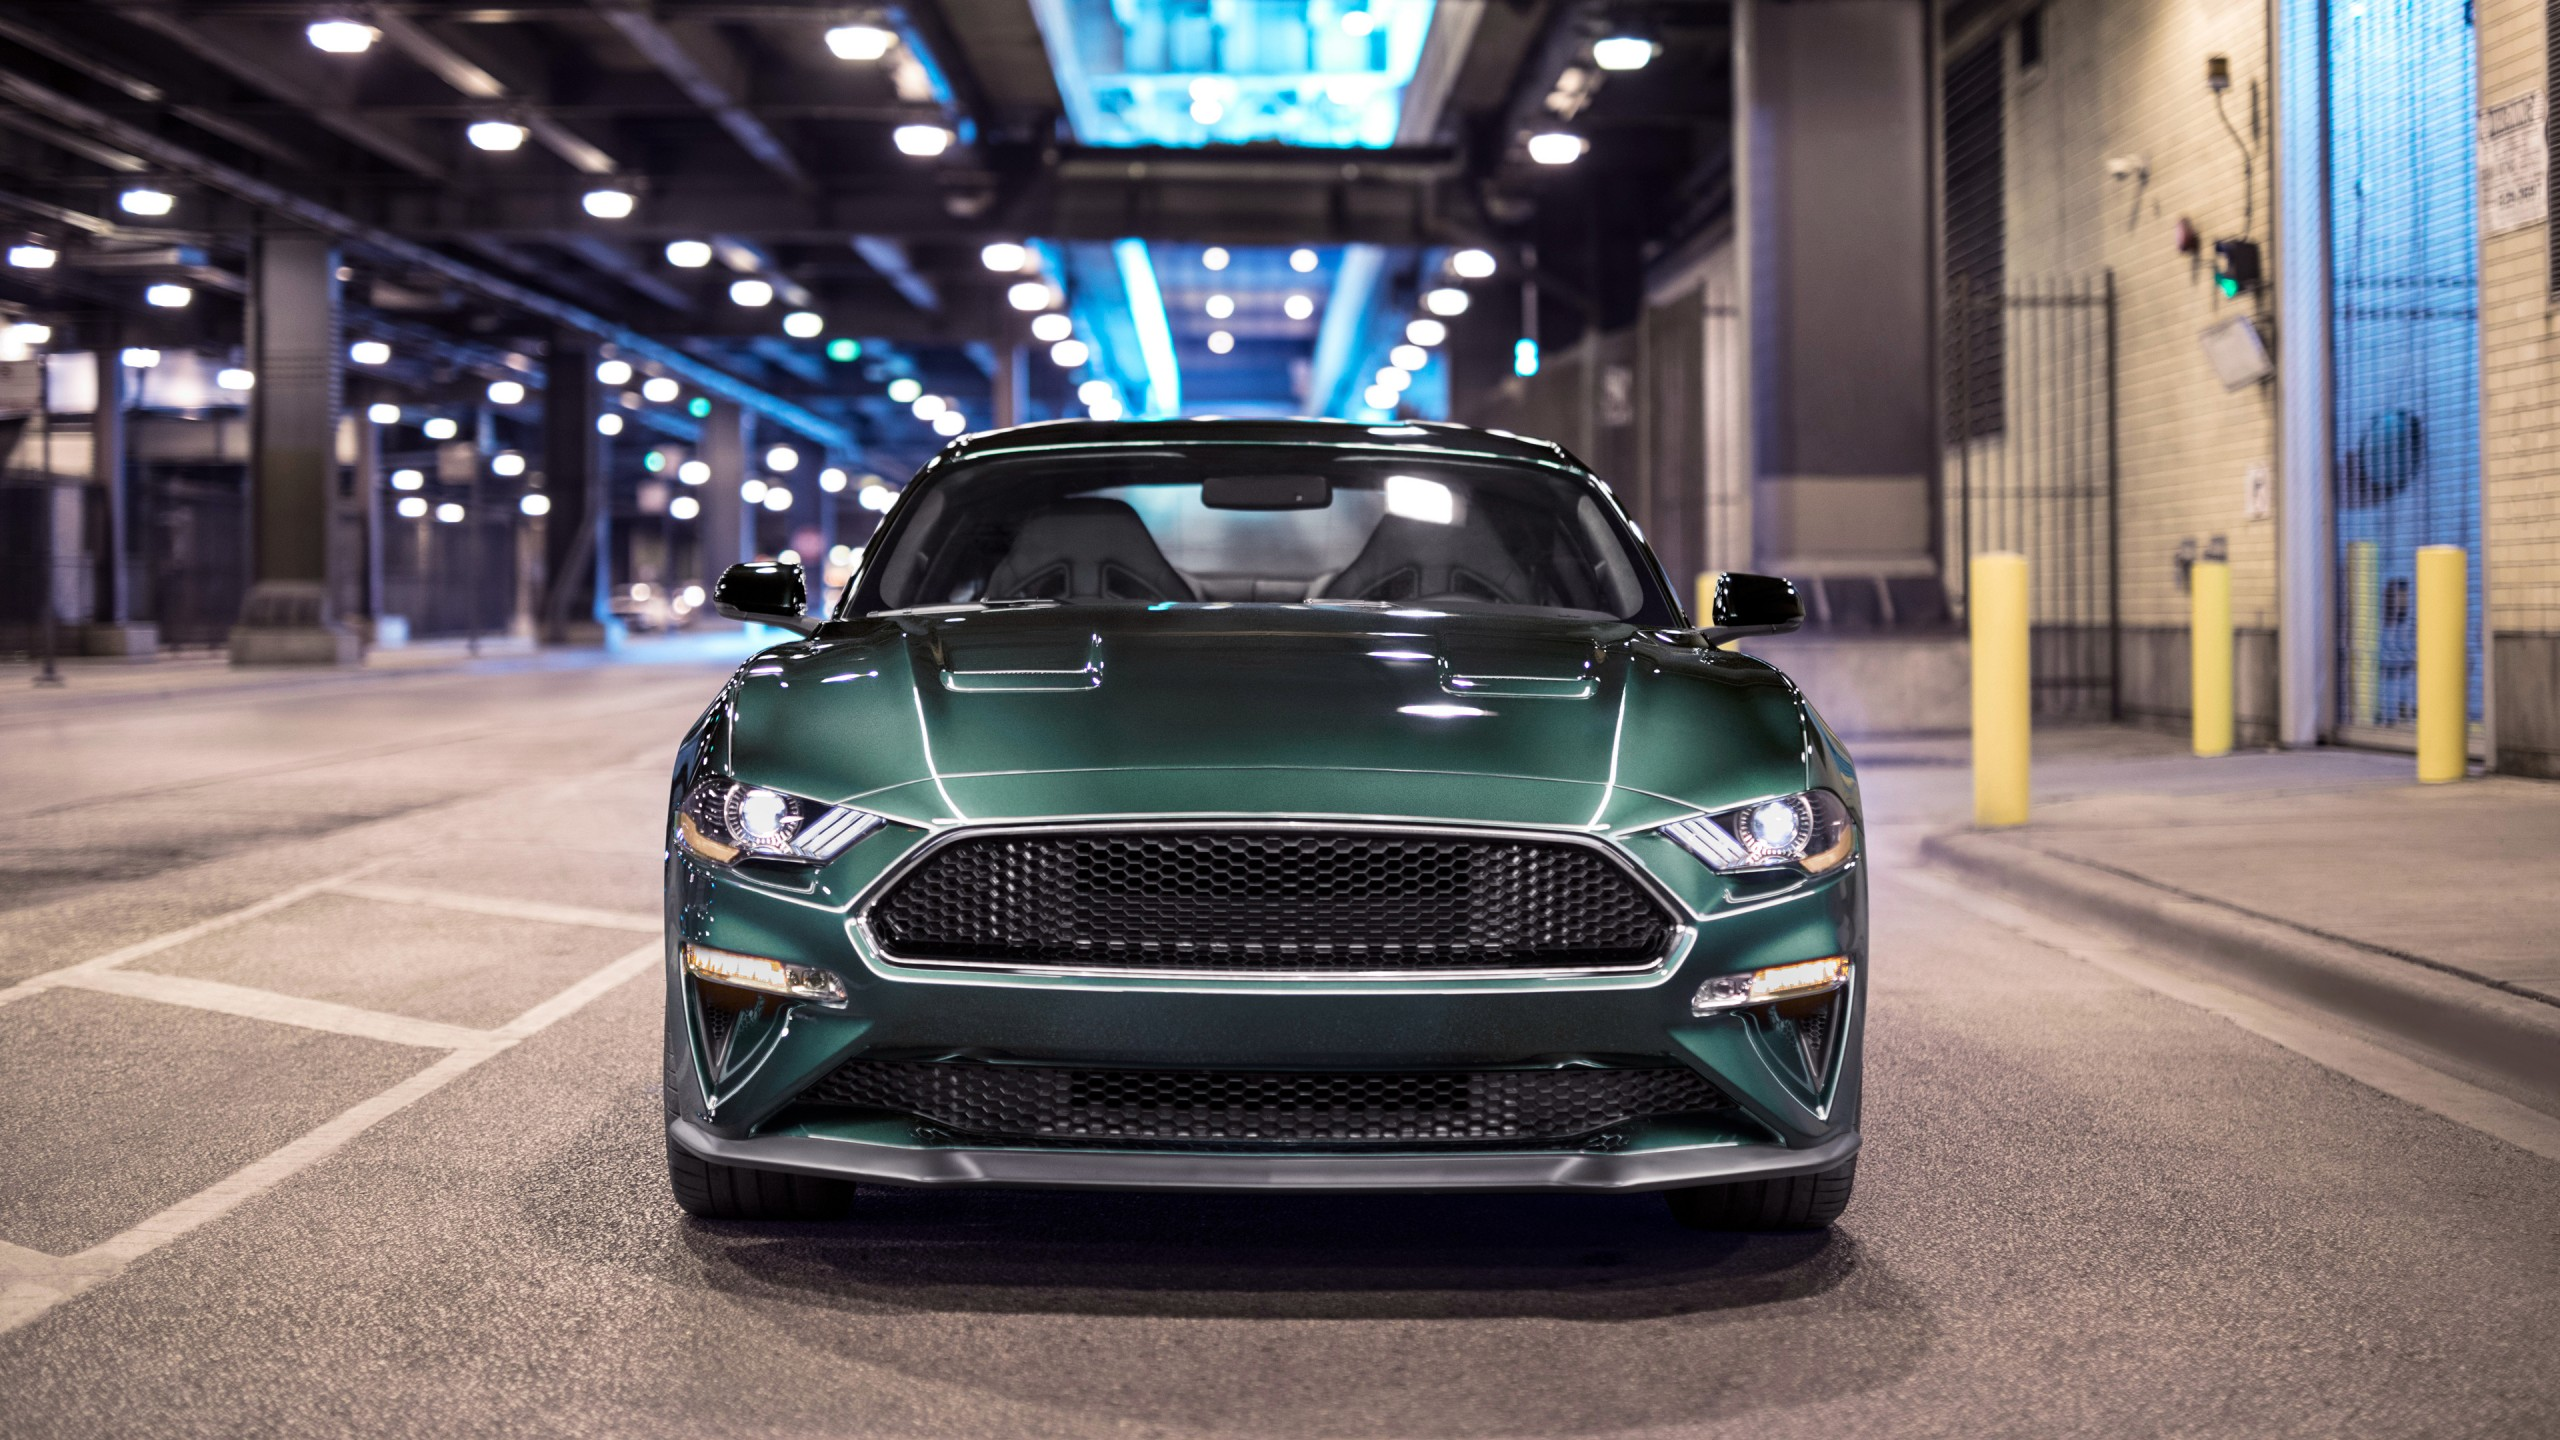 3d Woman Wallpaper Ford Mustang Bullitt 2018 4k Wallpapers Hd Wallpapers